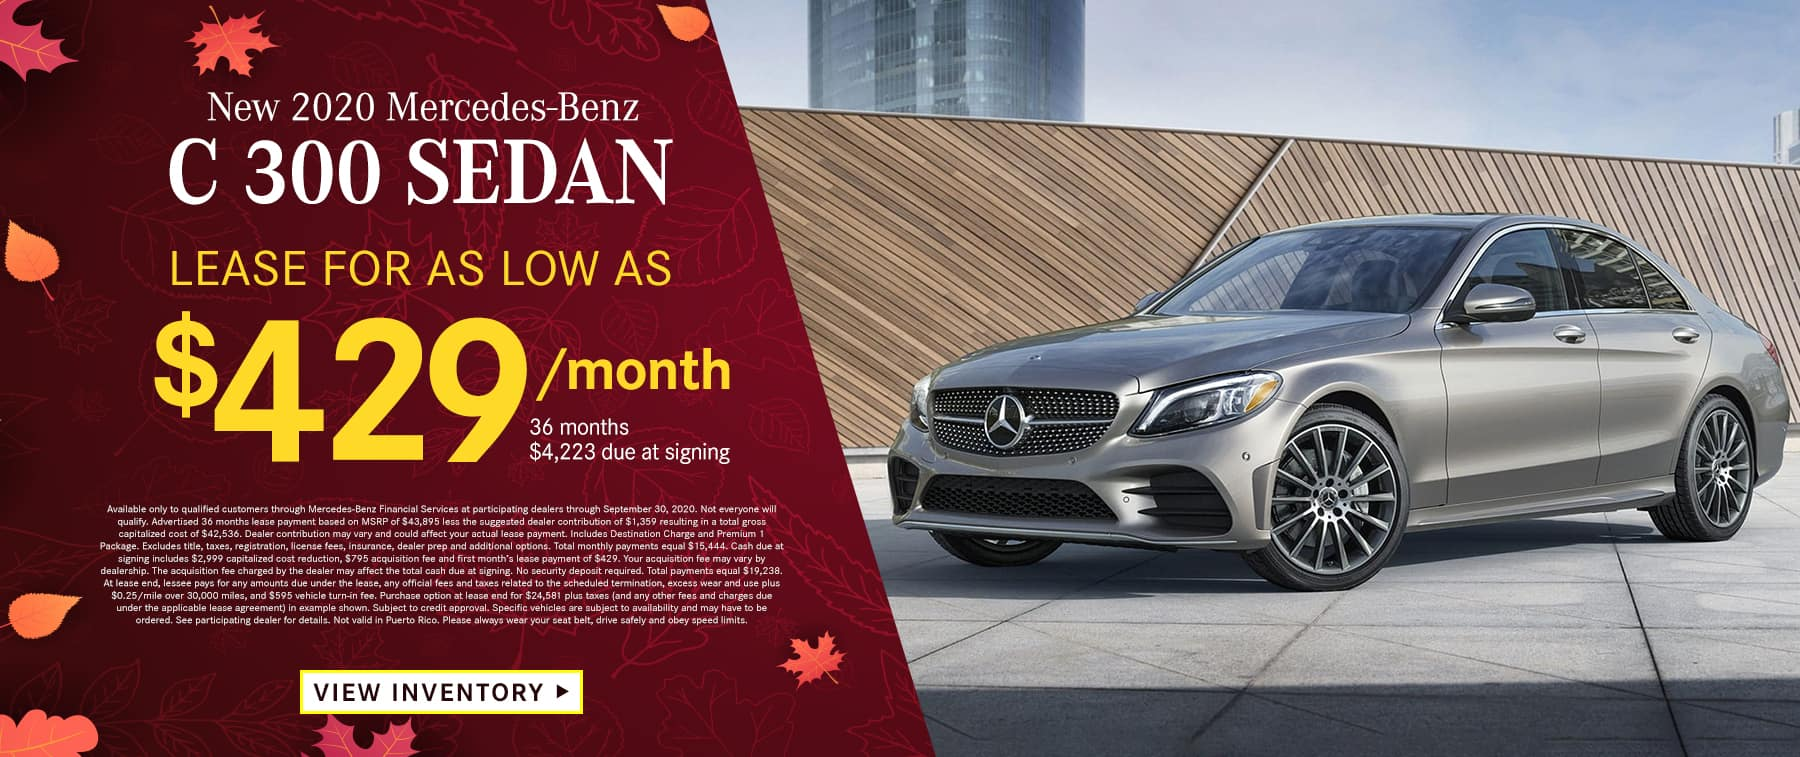 2020 C 300 Sedan Lease as low as $429 Per Month 36 Months/10k Miles $4,223 Due at signing